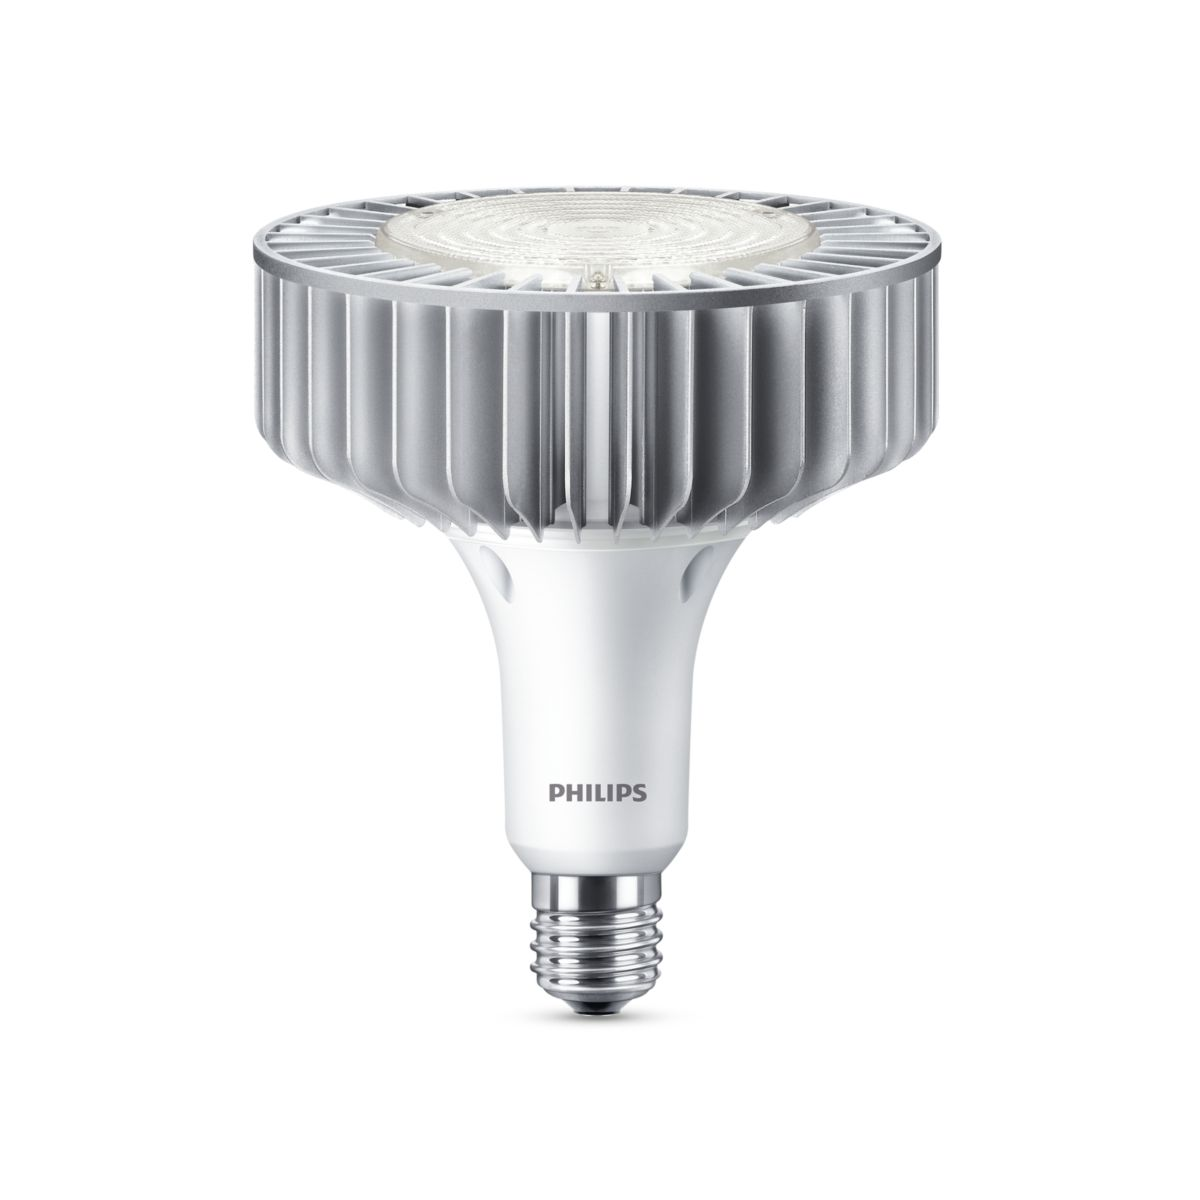 Philips Lighting Trueforce Led Industrial And Retail Mains Led Hid Replacement